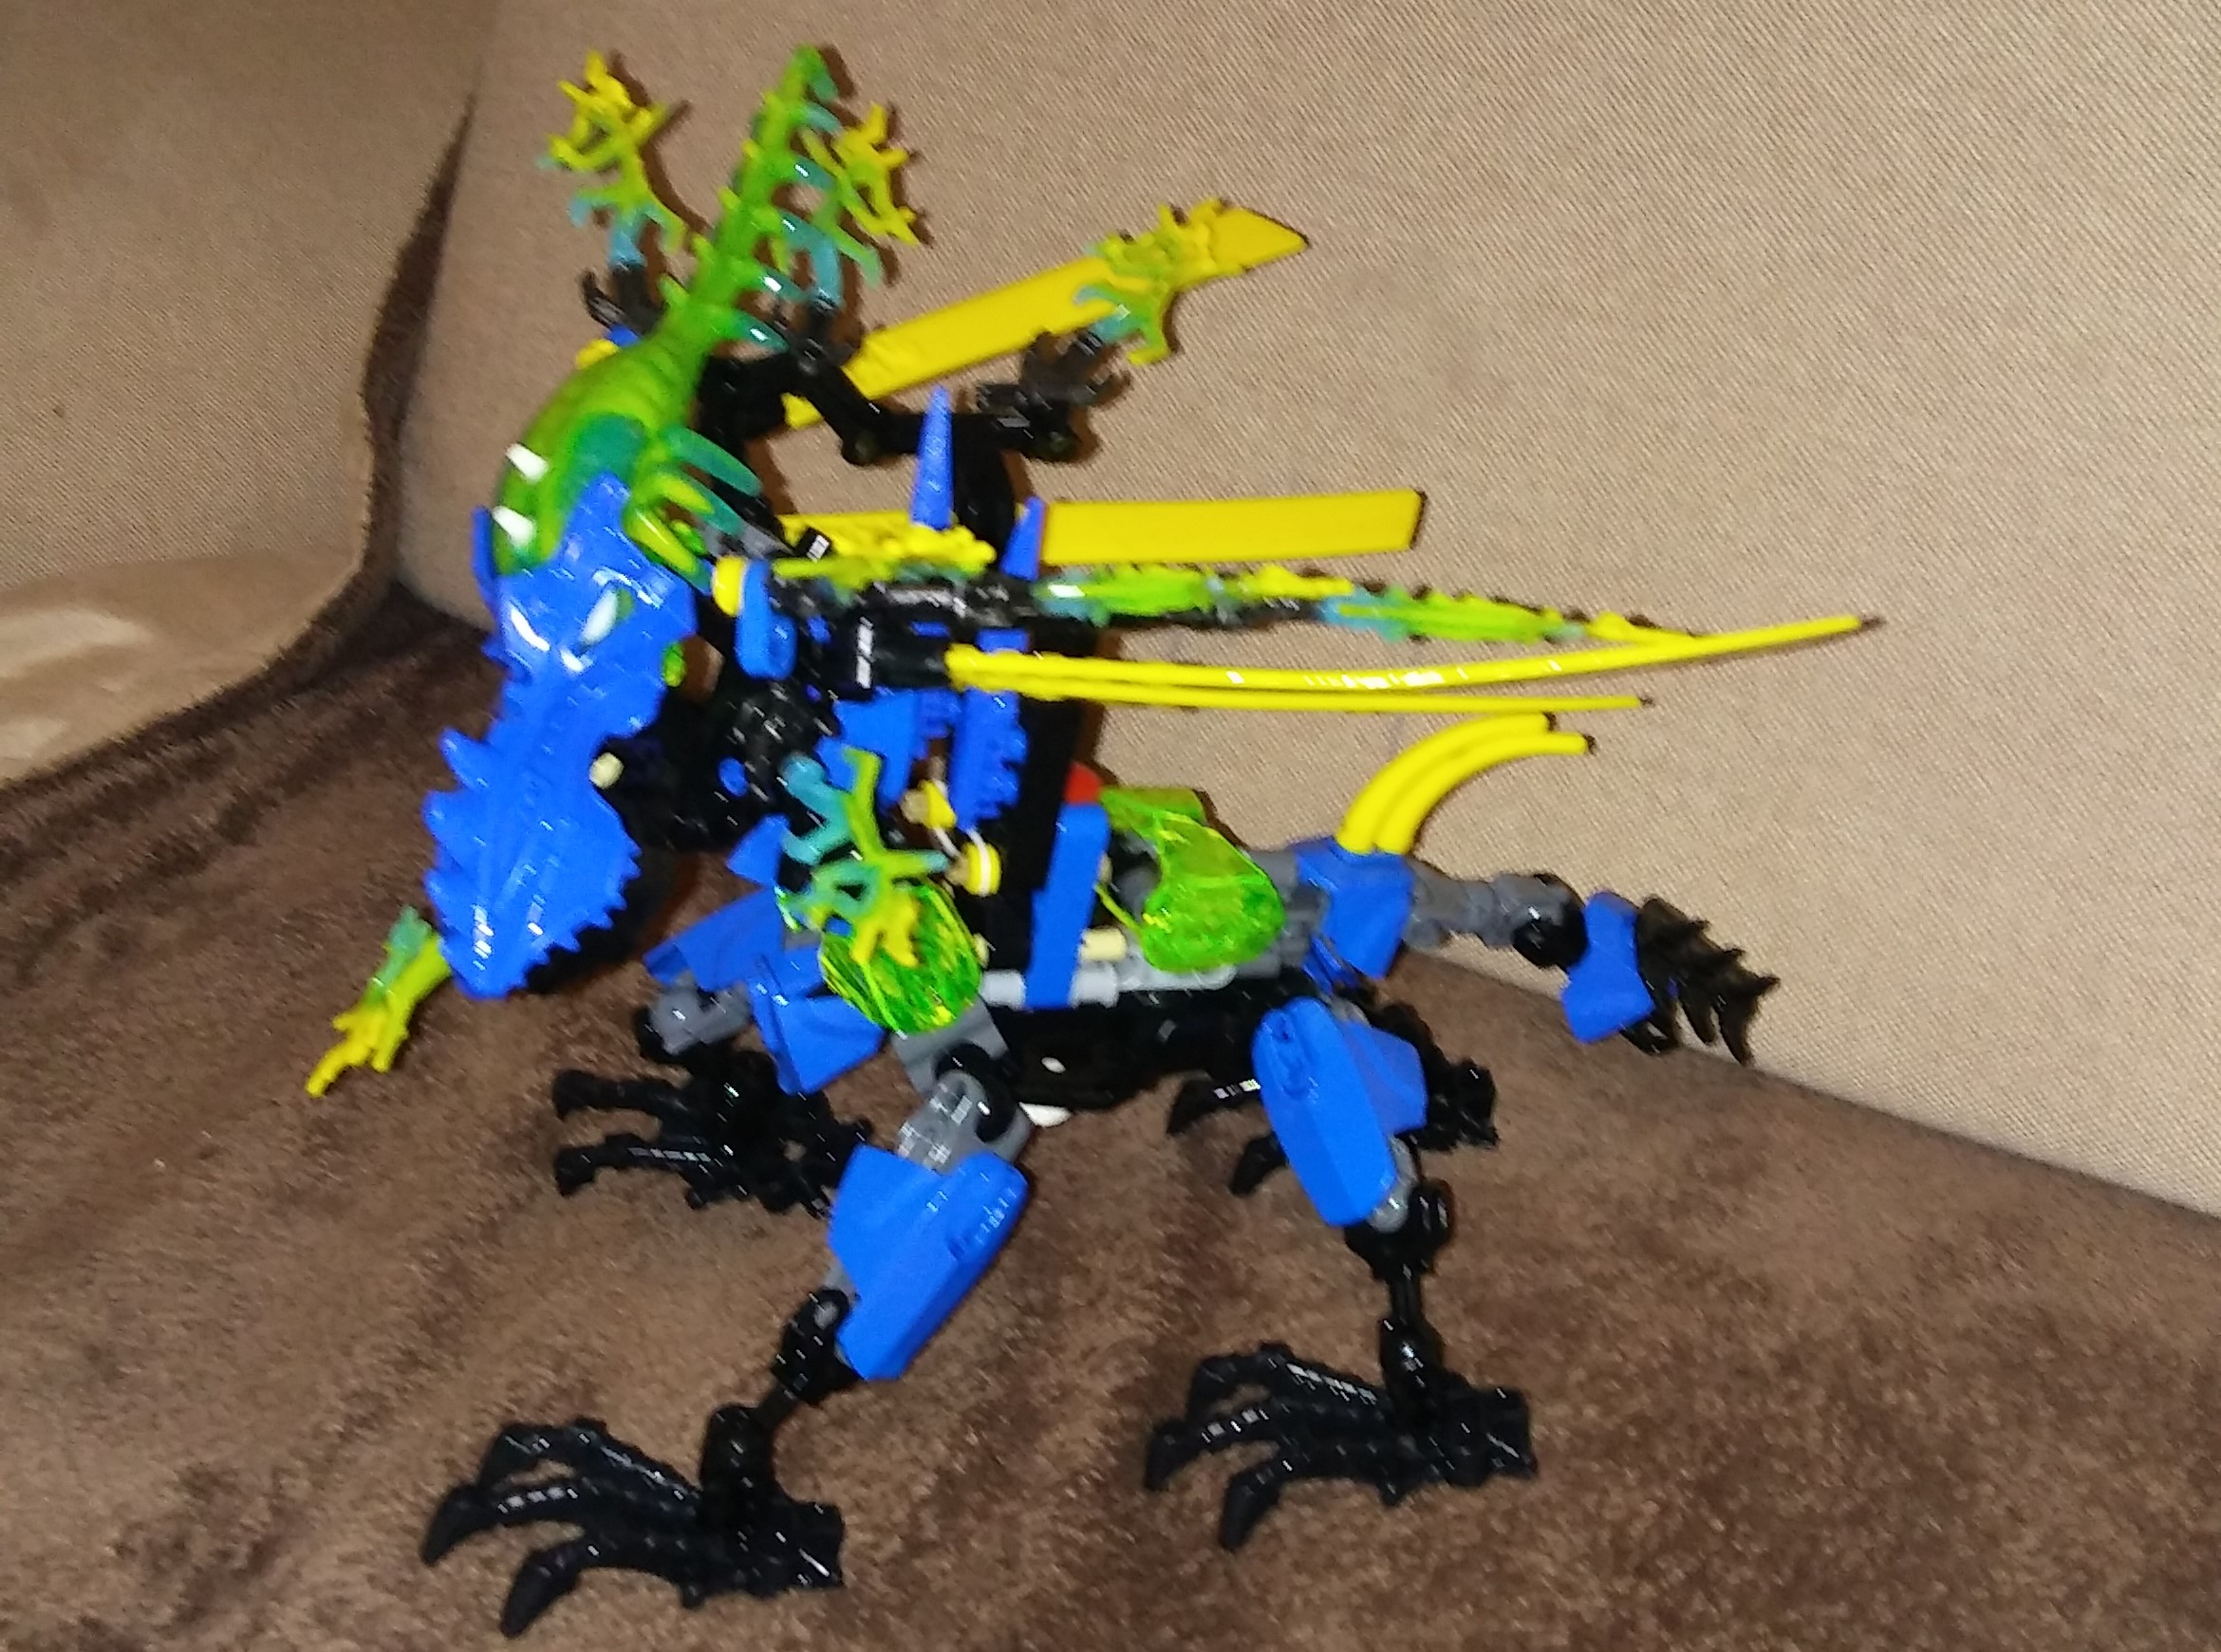 Lego 44009 Hero Factory Dragon Bolt Atak Mózgów 7084192614